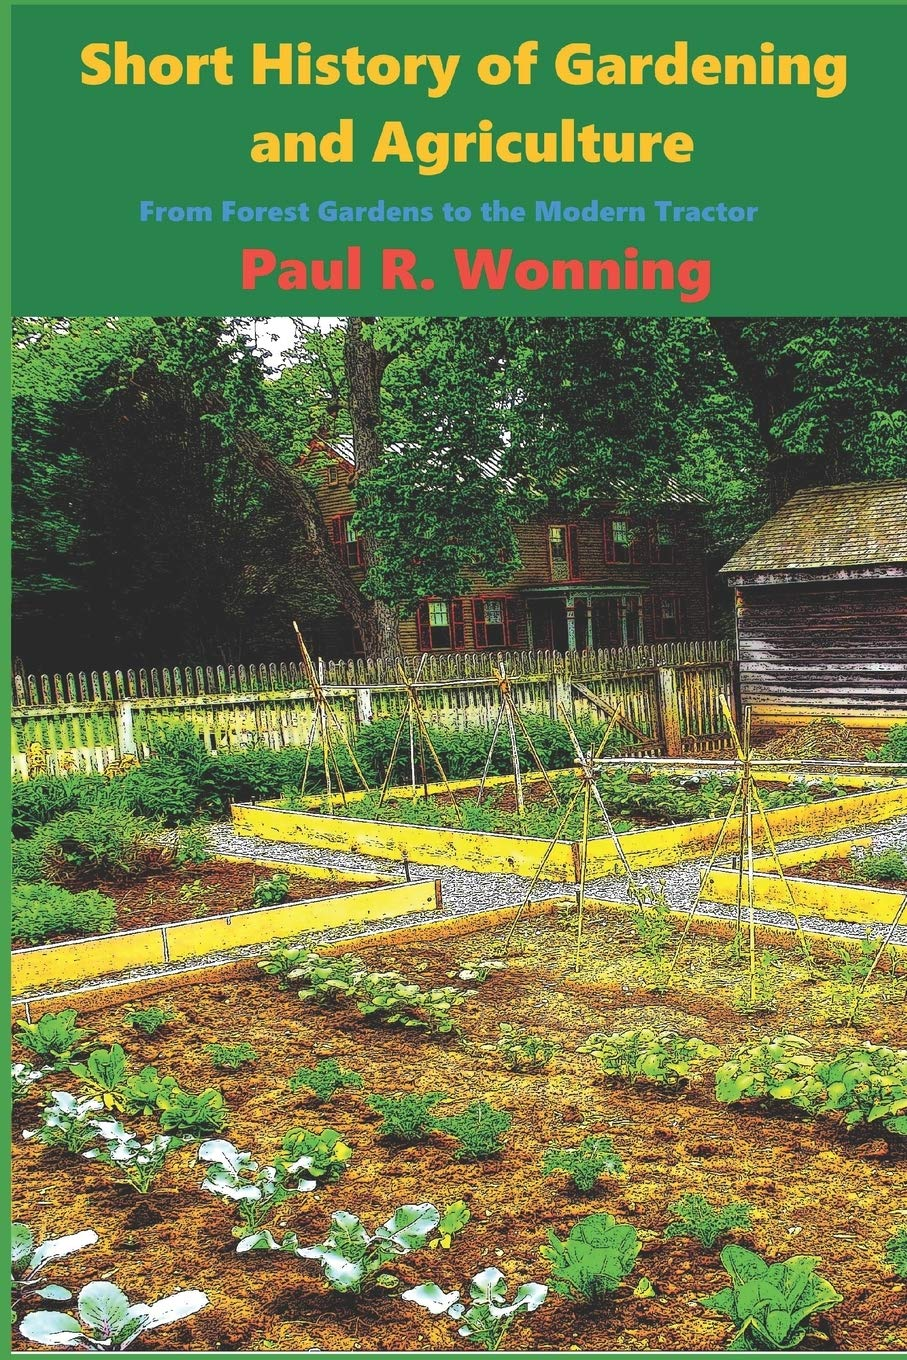 Short History of Gardening and Agriculture: From Forest Gardens to